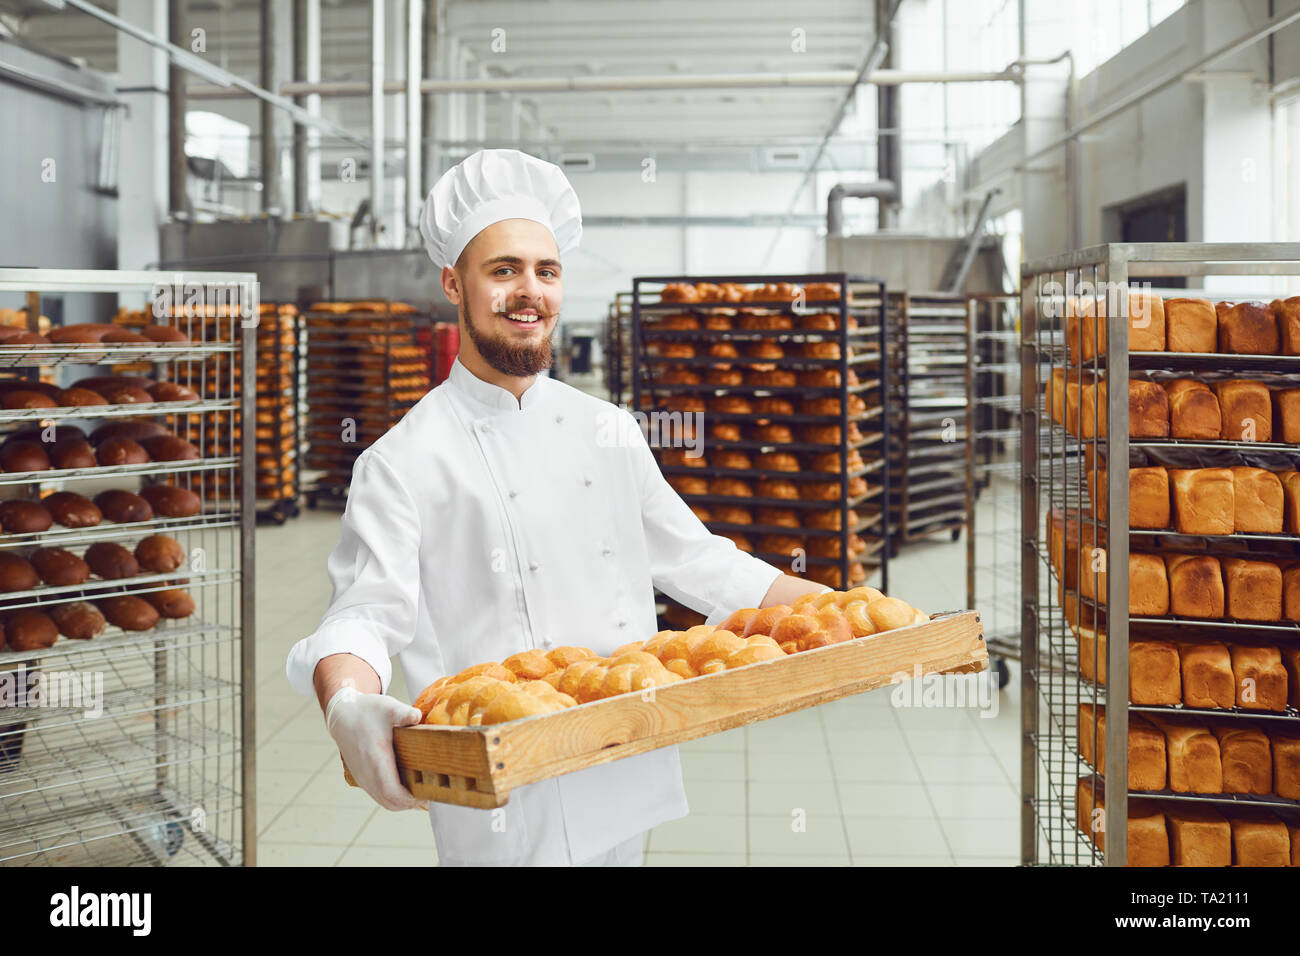 Smiling baker in white uniform with trays of fresh bread costs in the production of the bakery. Stock Photo